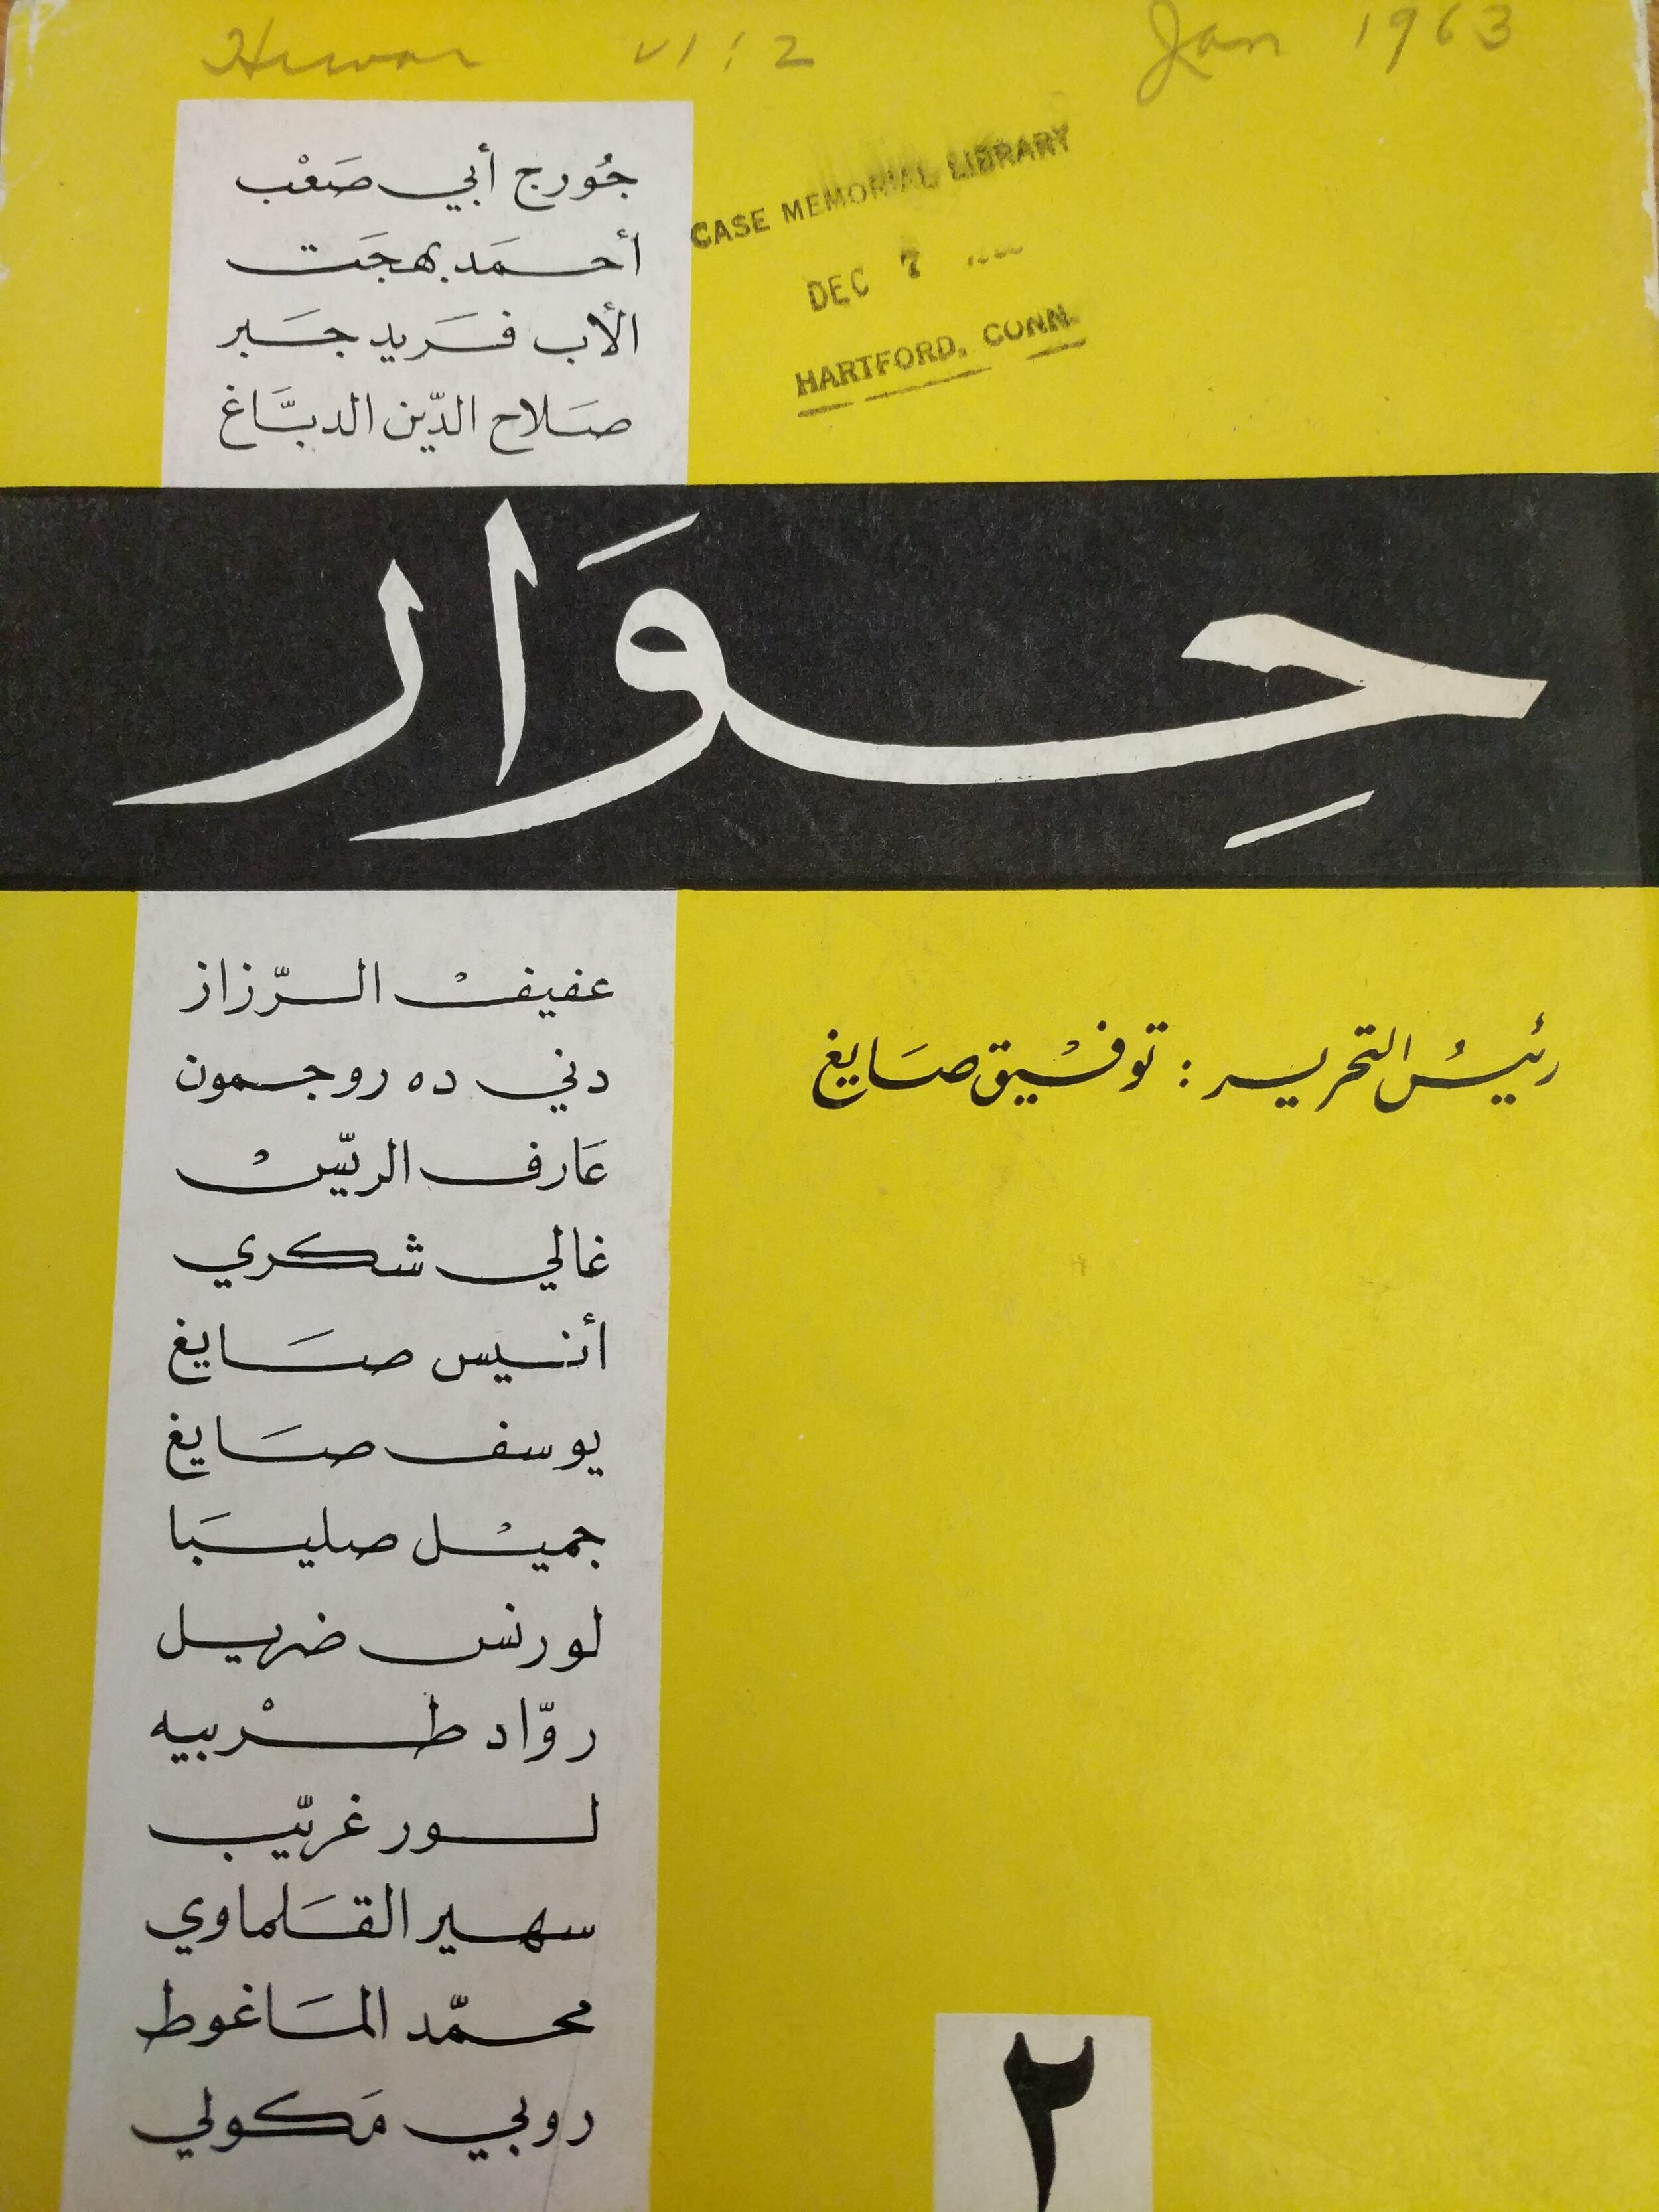 The (in)famous Hiwar journal, of which I have a  nearly  complete set. Let's look at their covers and then dive in. I posted some images from early volumes previously. New stuff this time.